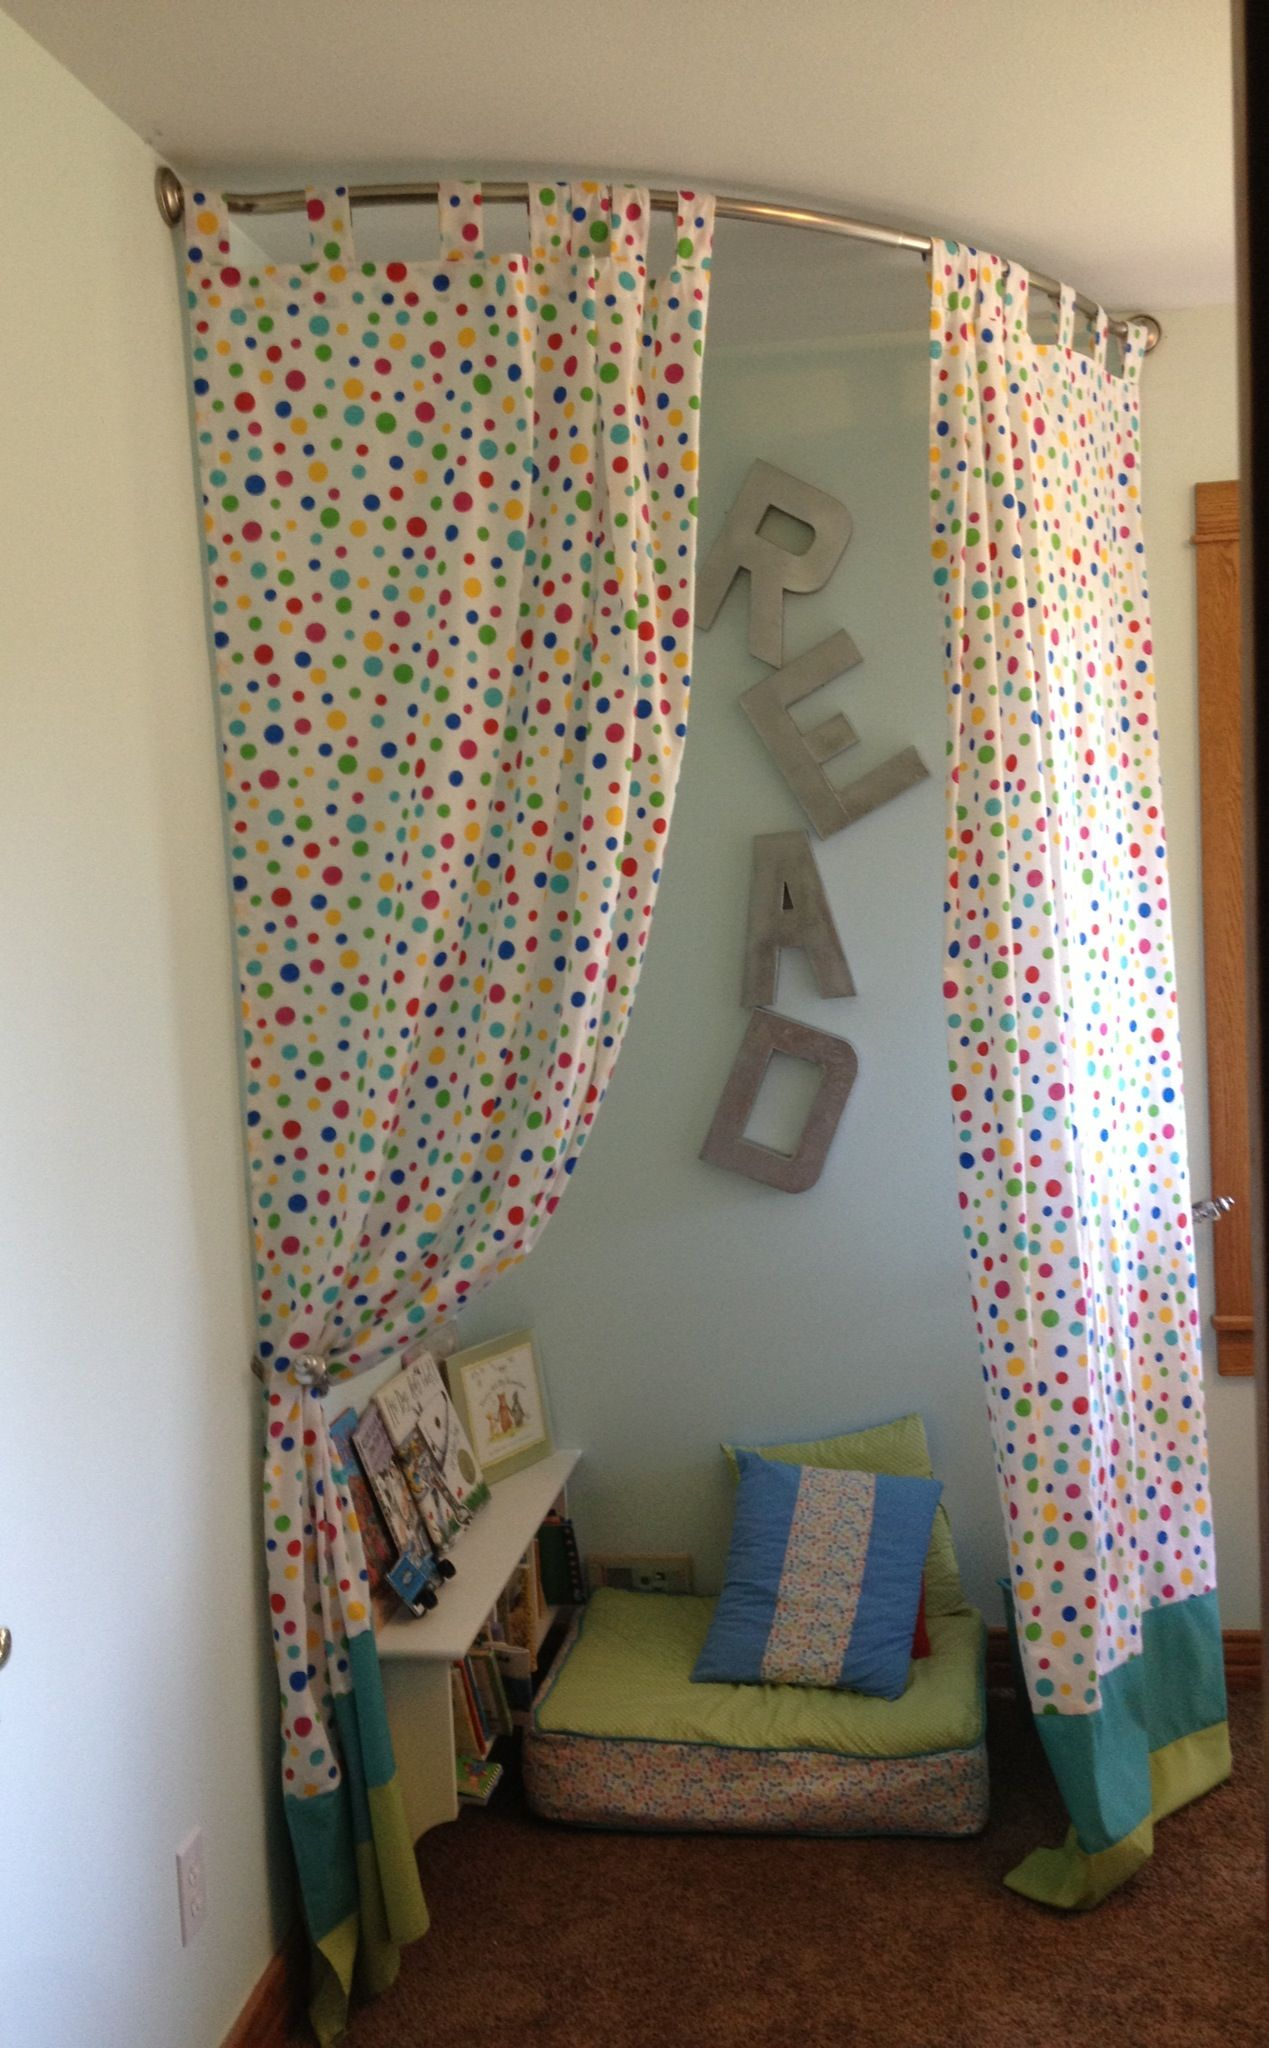 I finally finished the kids reading nook area in our homeschooling